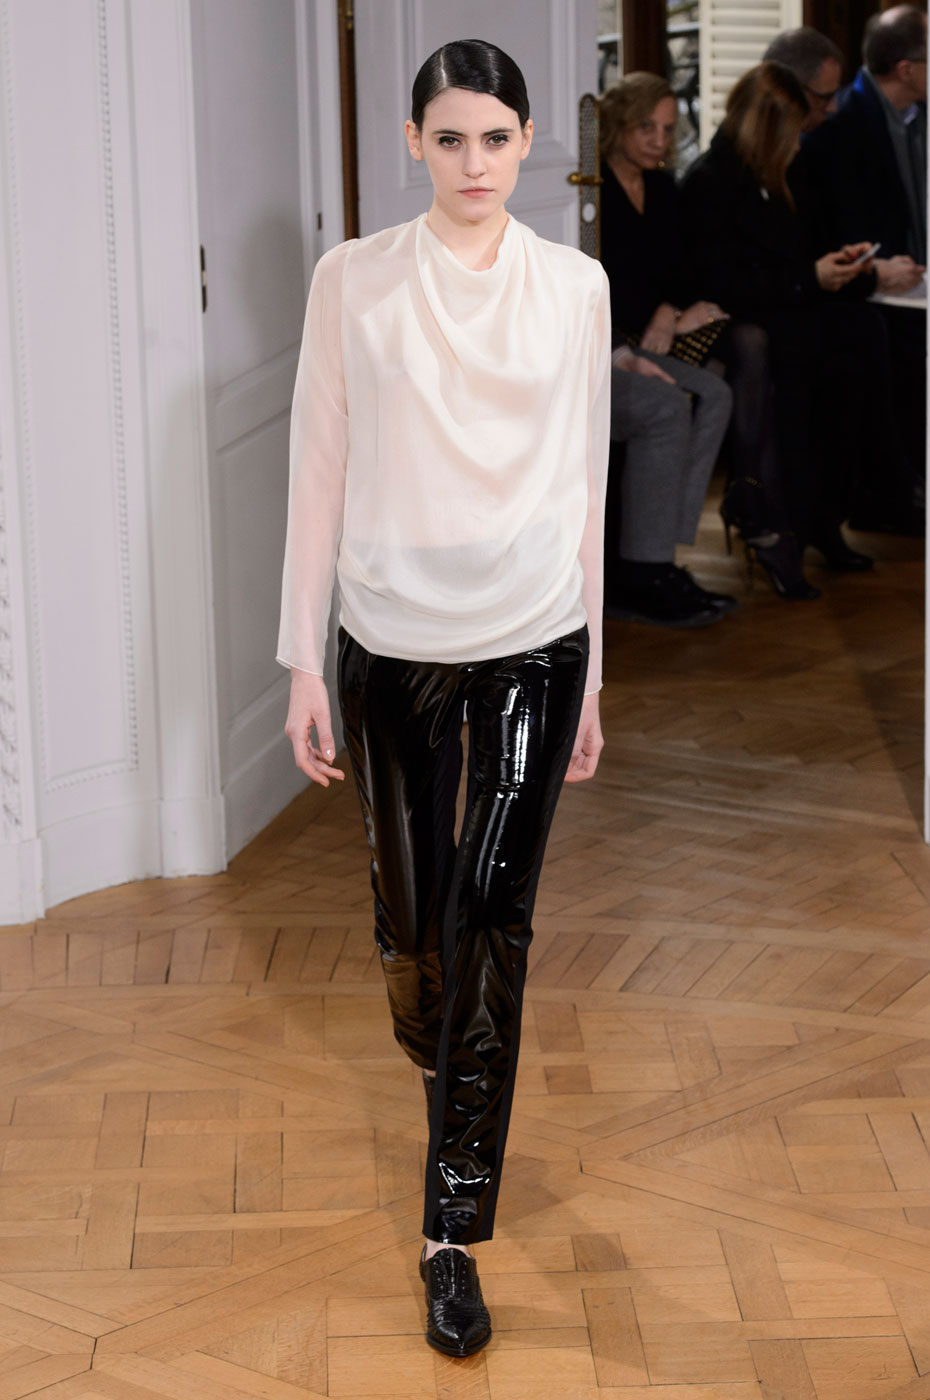 Bouchra-Jarrar-fashion-runway-show-haute-couture-paris-spring-summer-2015-the-impression-47